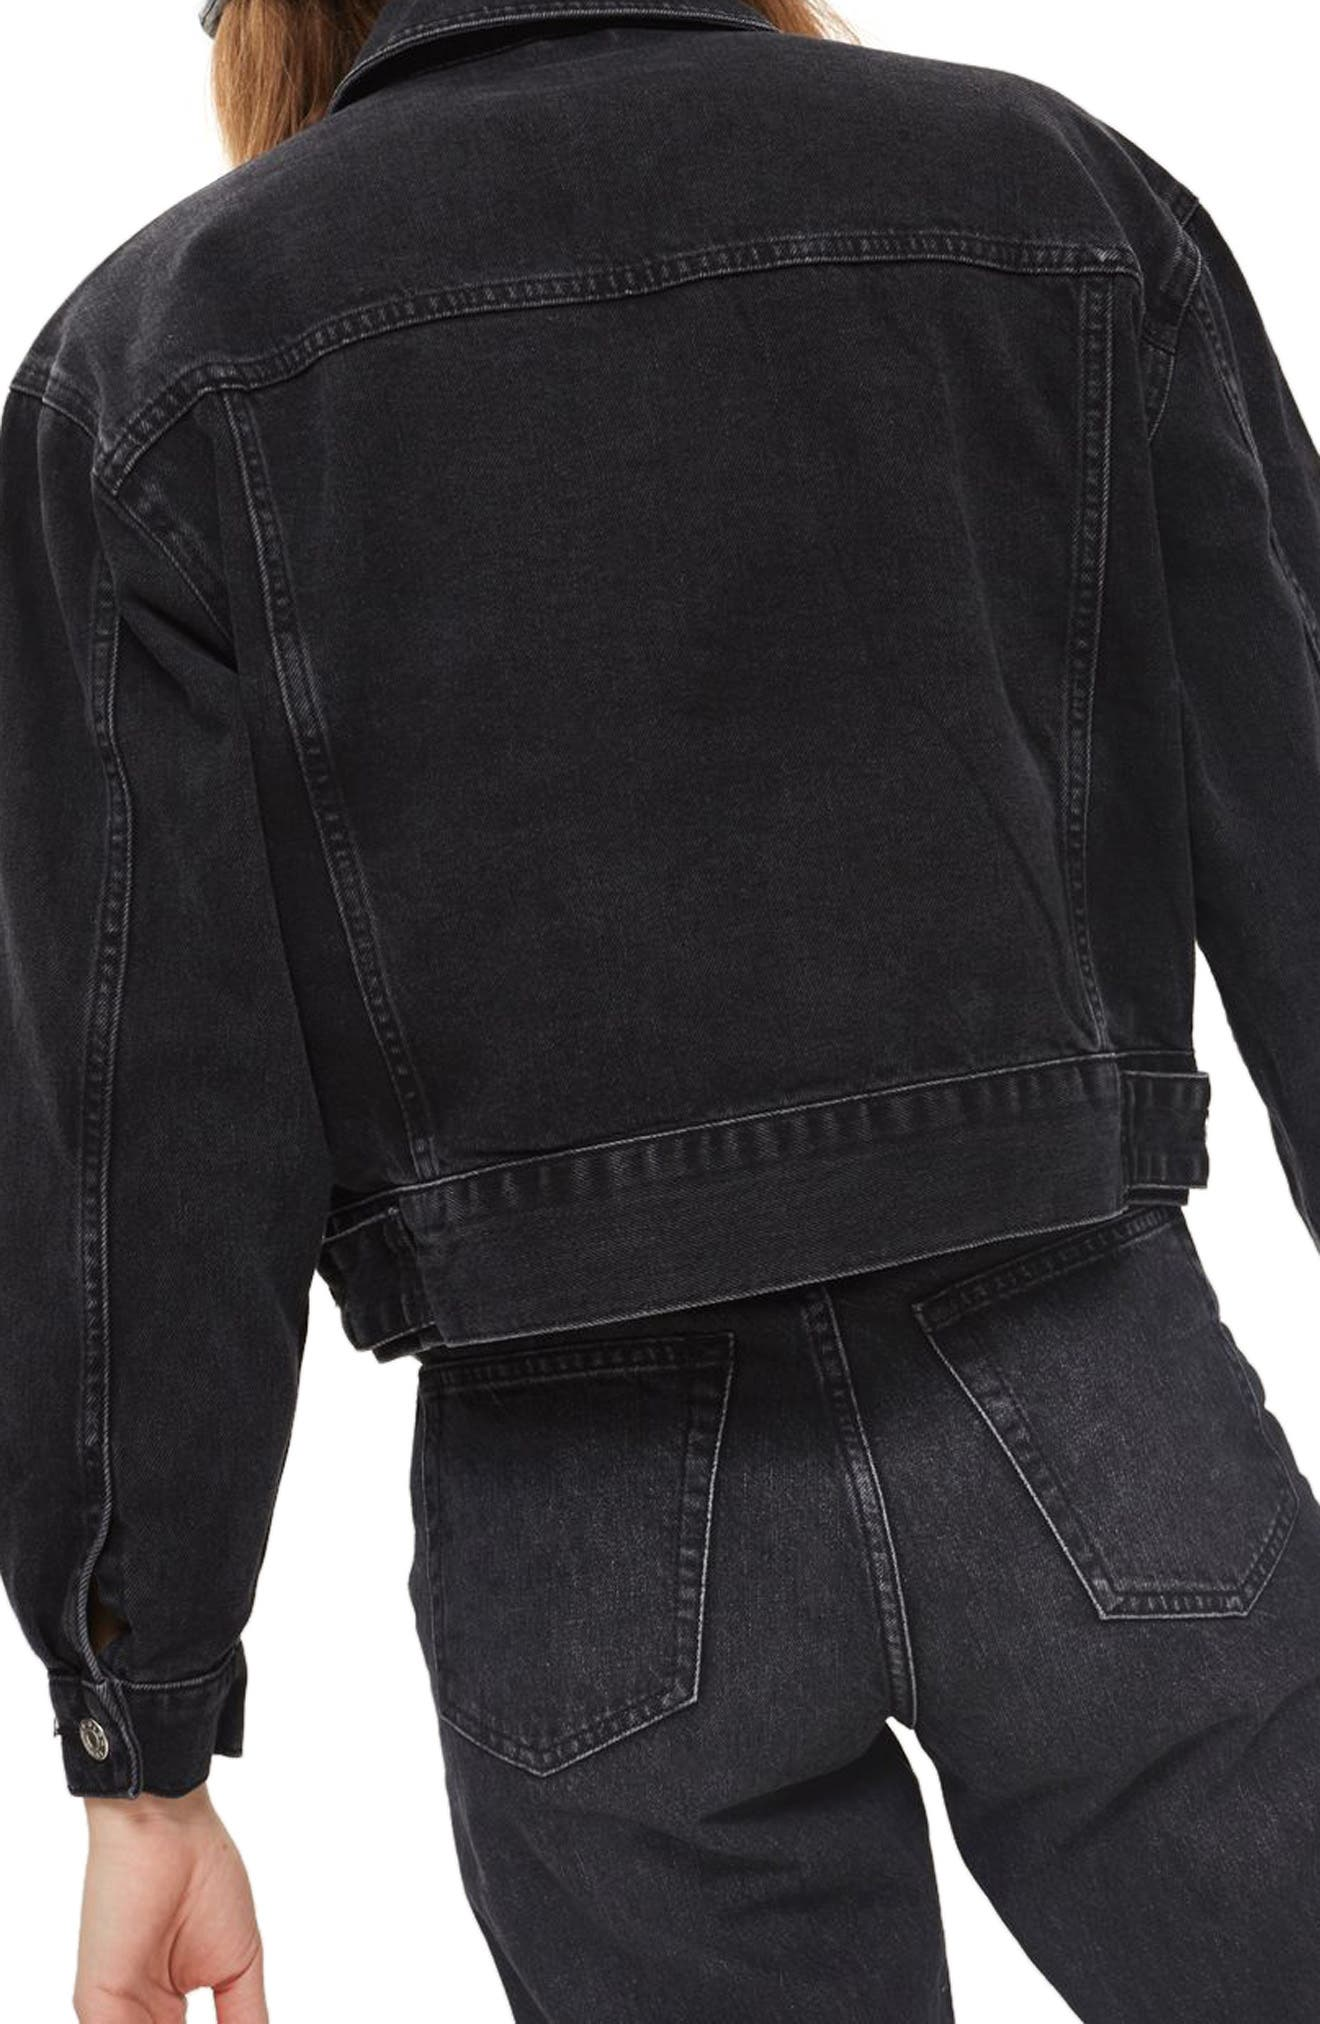 Boxy Crop Denim Jacket,                             Alternate thumbnail 2, color,                             WASHED BLACK